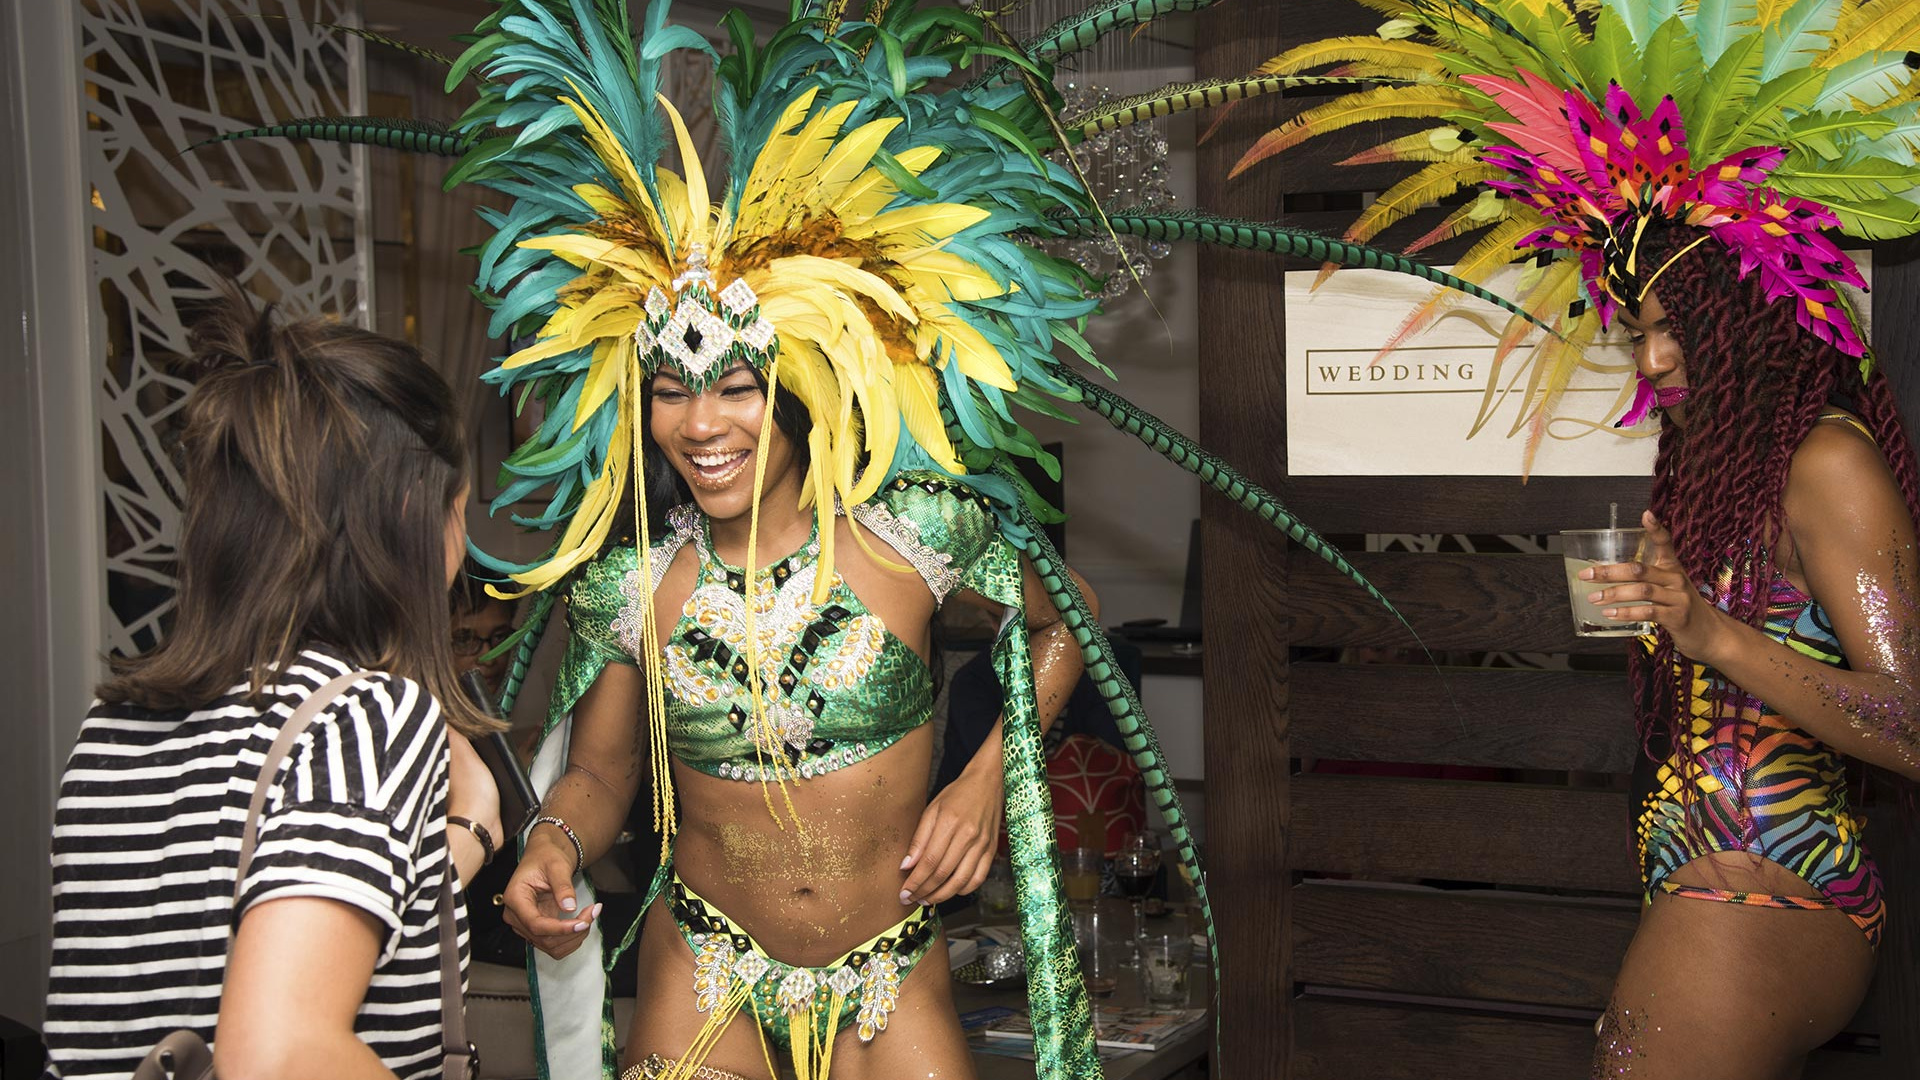 Escapism & Sandals: A Taste of the Caribbean Party